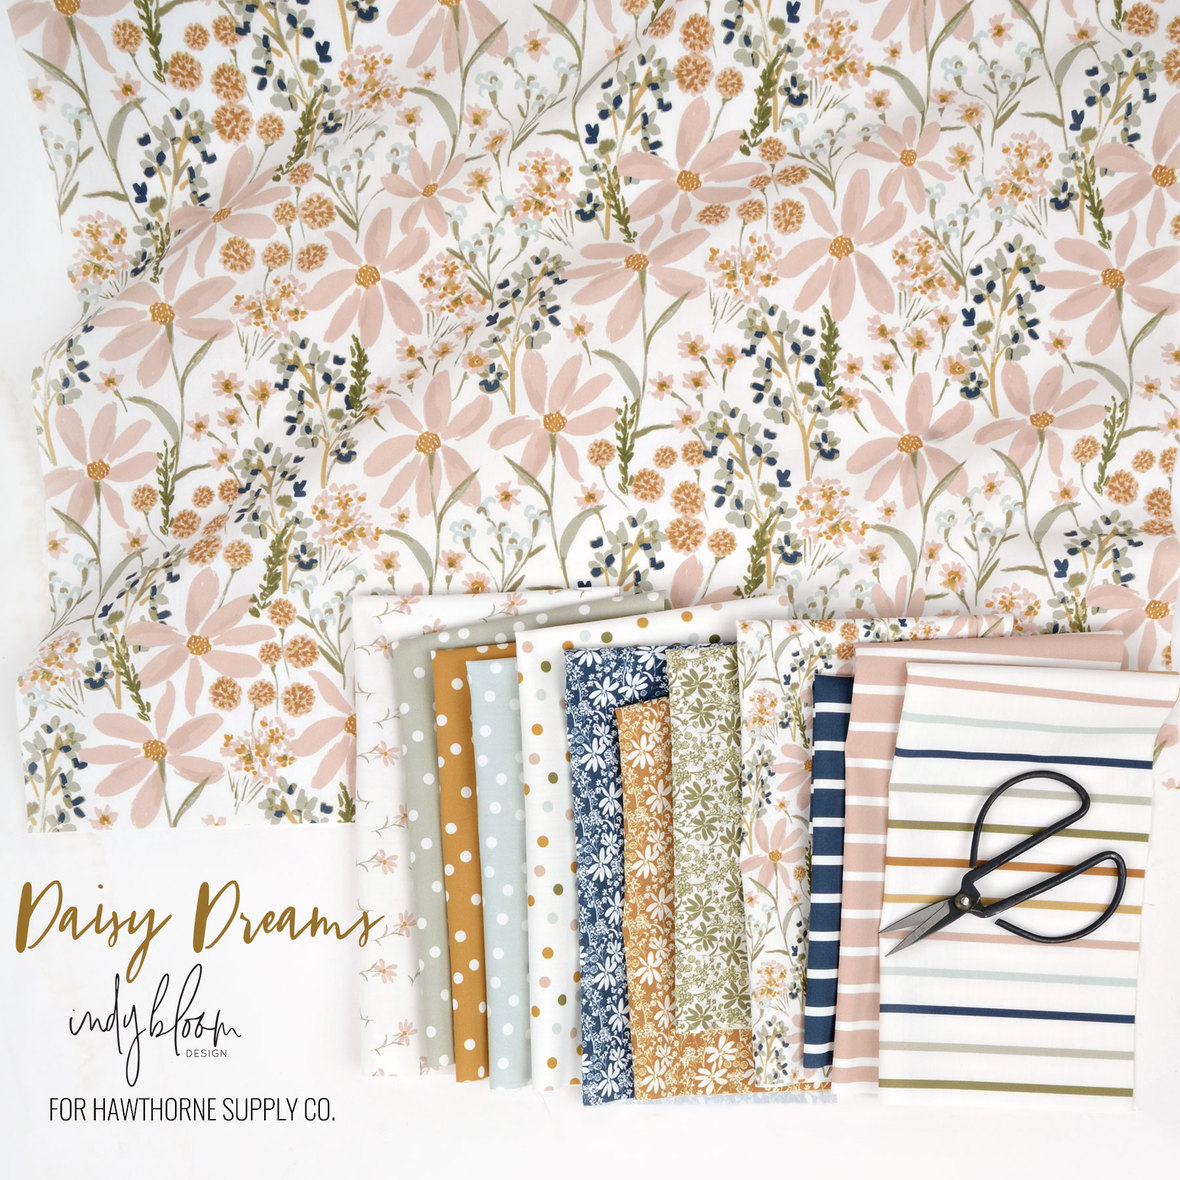 Daisy-Dreams-Fabric-Indy-Bloom-for-Hawthorne-Supply-Co